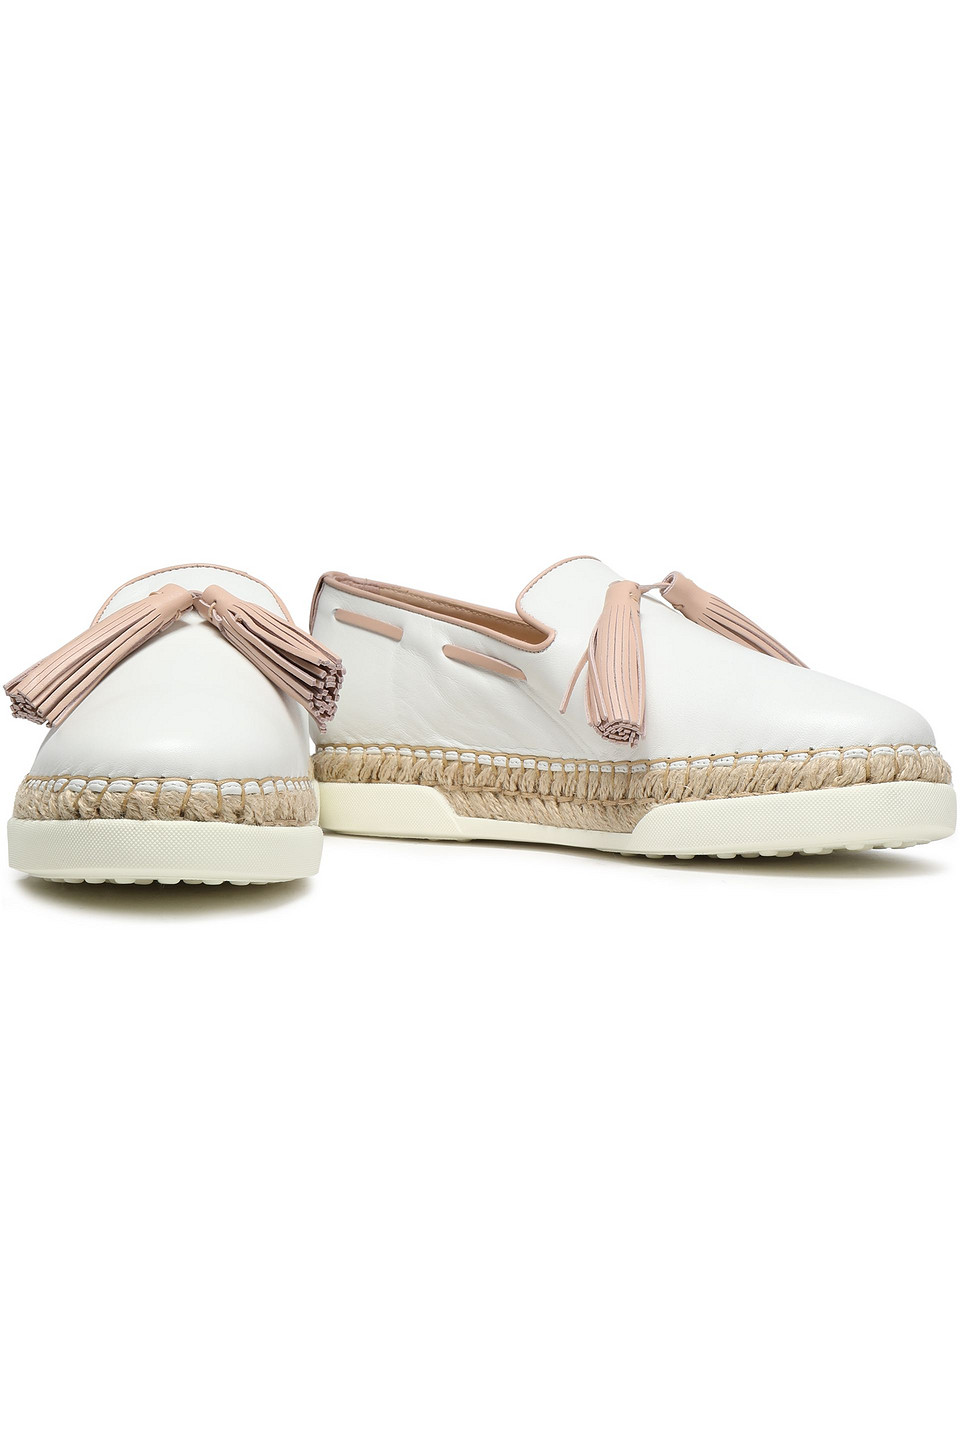 Tod's   Tod's Woman Tasseled Leather Espadrilles White   Clouty